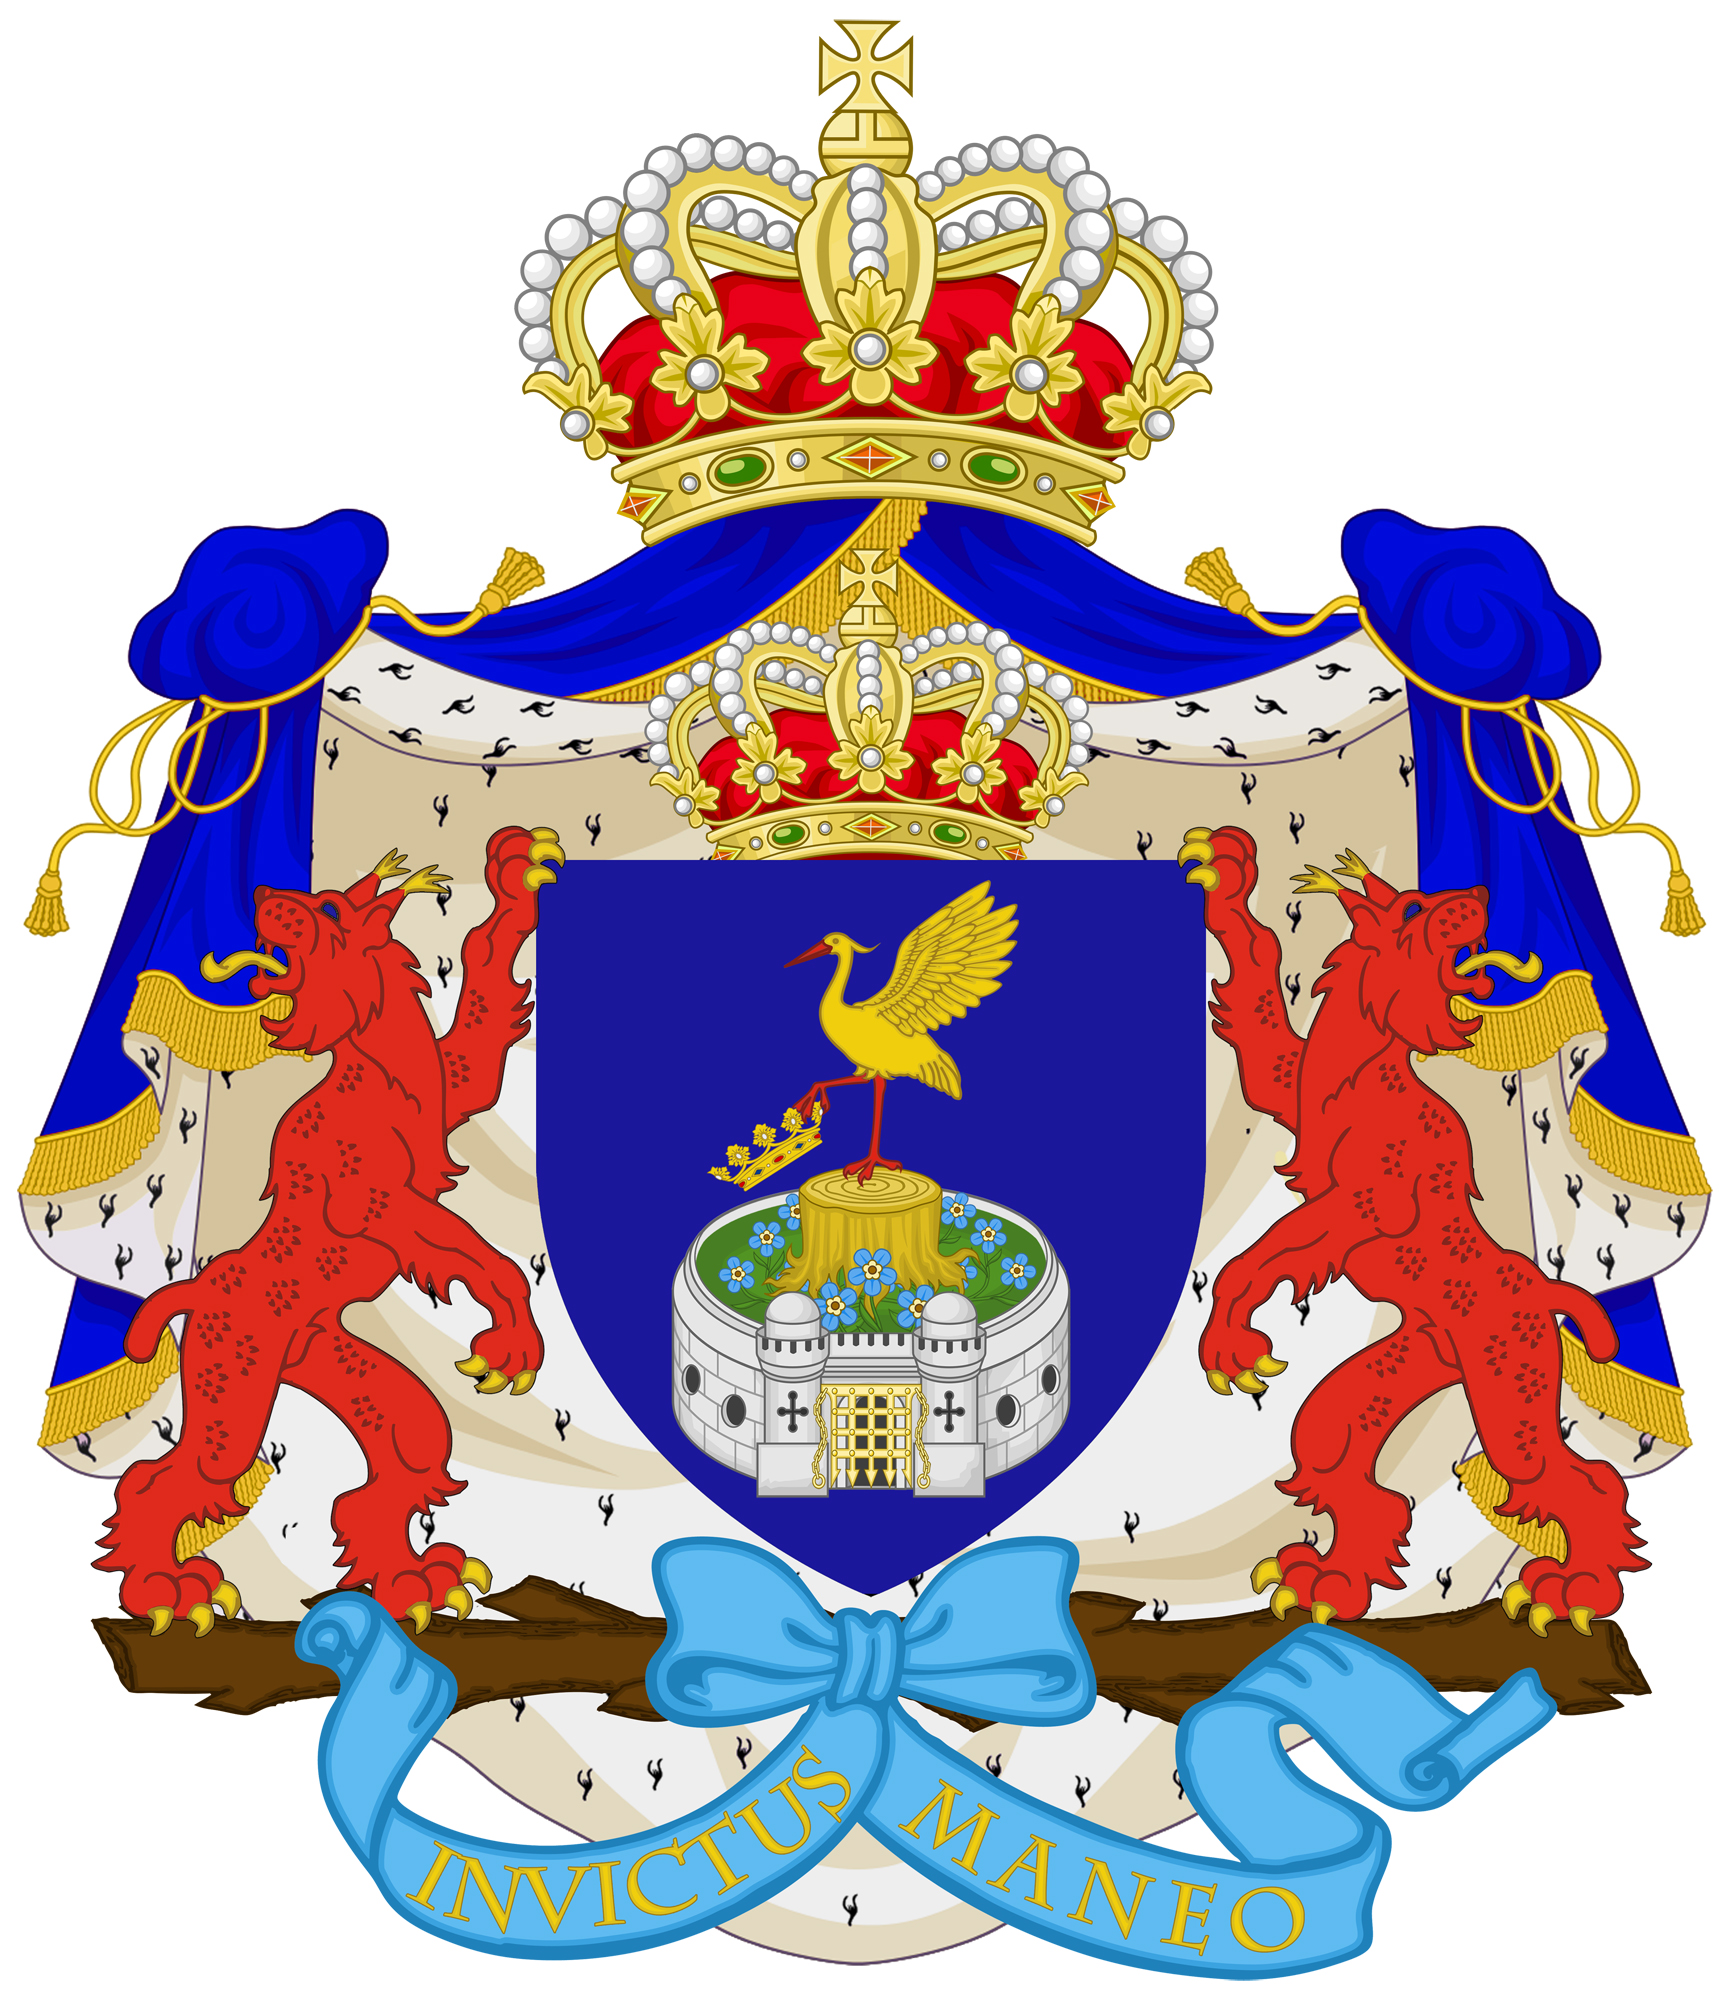 Coat of arms for the Grand Ducal family Hager of Hagersbourg